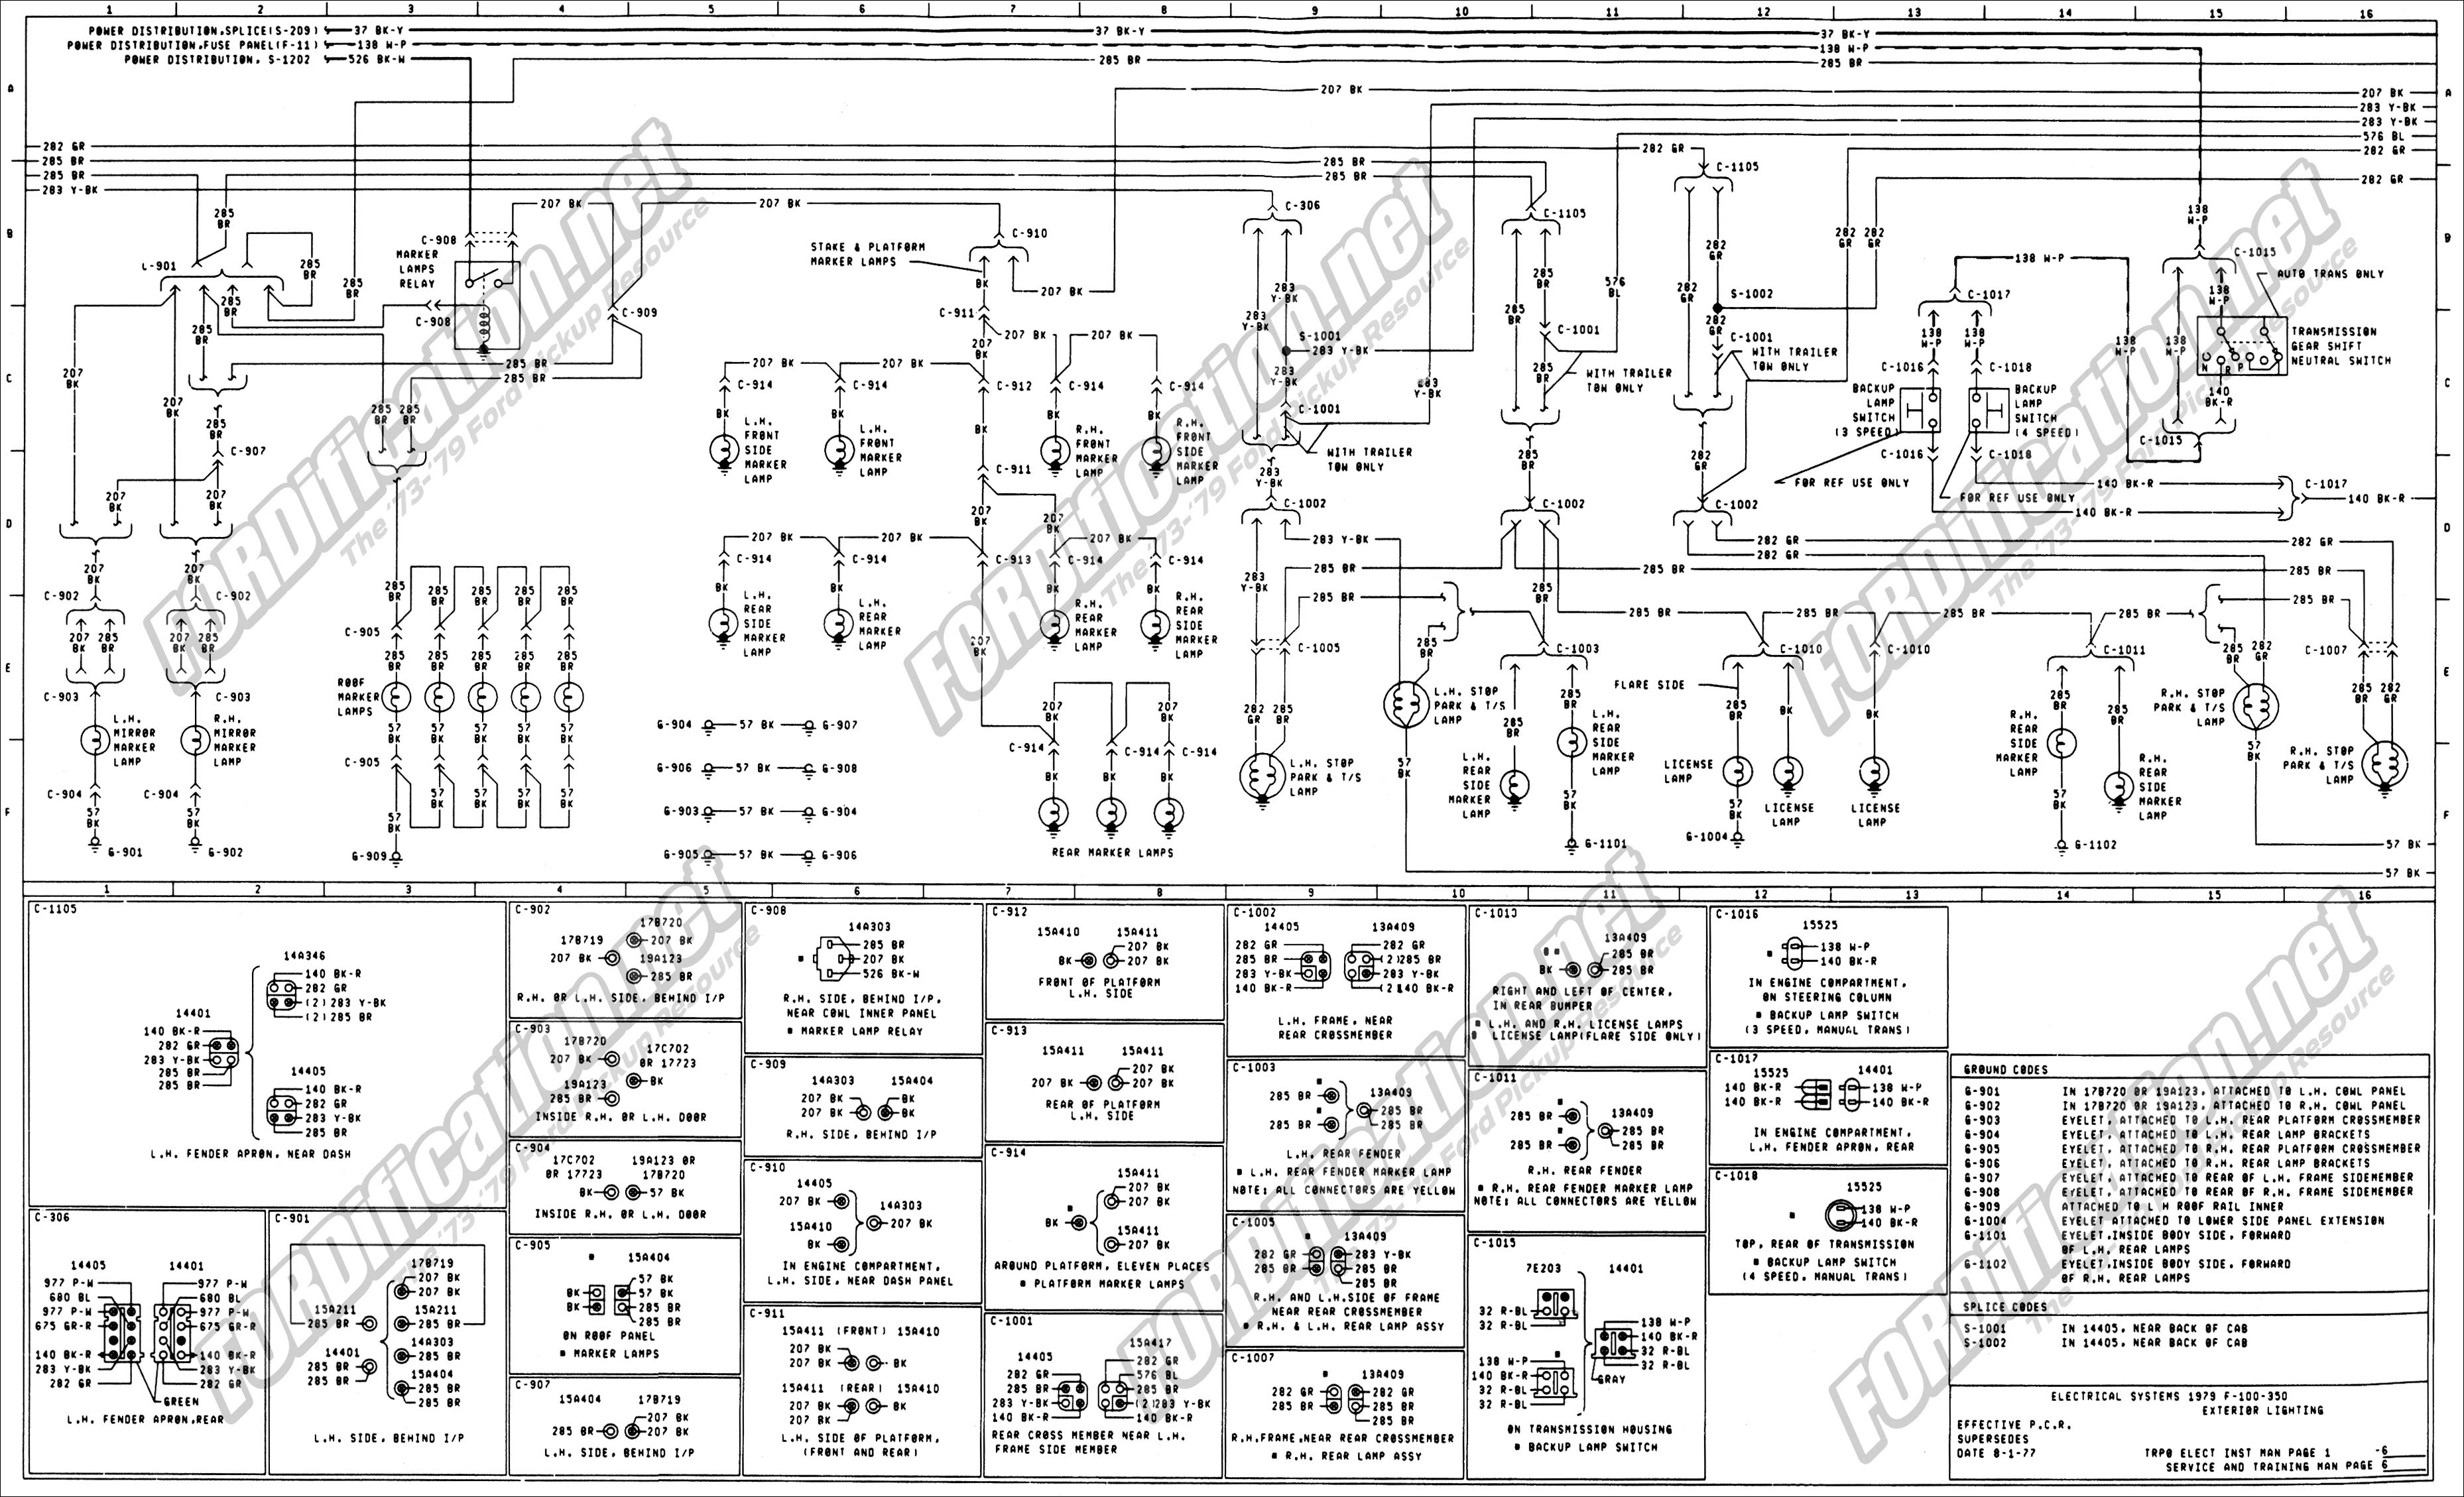 1978 F150 Wiring Diagram Schematics Diagrams International 1700 Loadstar 1973 1979 Ford Truck Fordification Net Rh Ignition